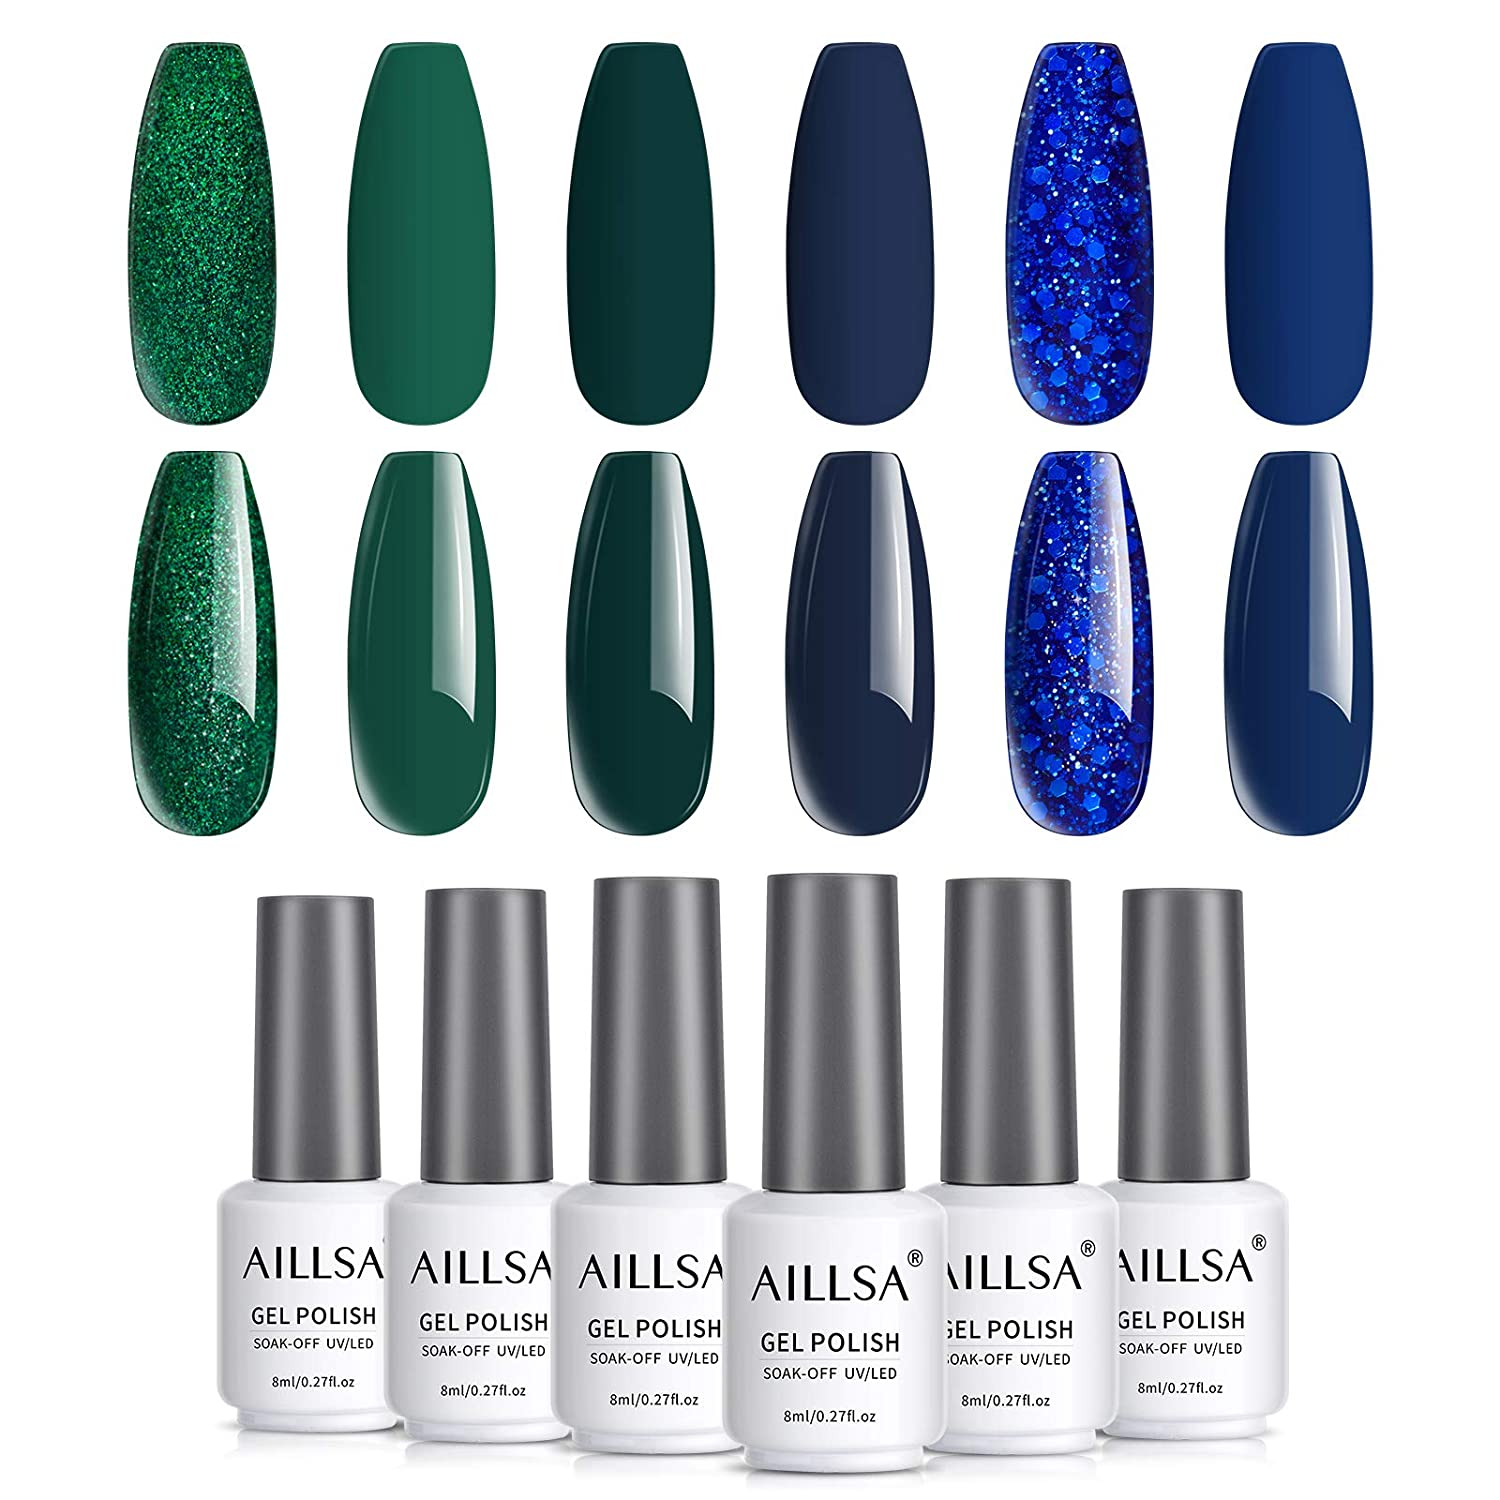 AILLSA Teal Blue Gel Nail Polish Set, 6 Colors Glitter Royal Blue Gel Polish Kit Green Glitter Nail Gel Polish Set, Soak Off UV LED Gel Nail Art Gift Box